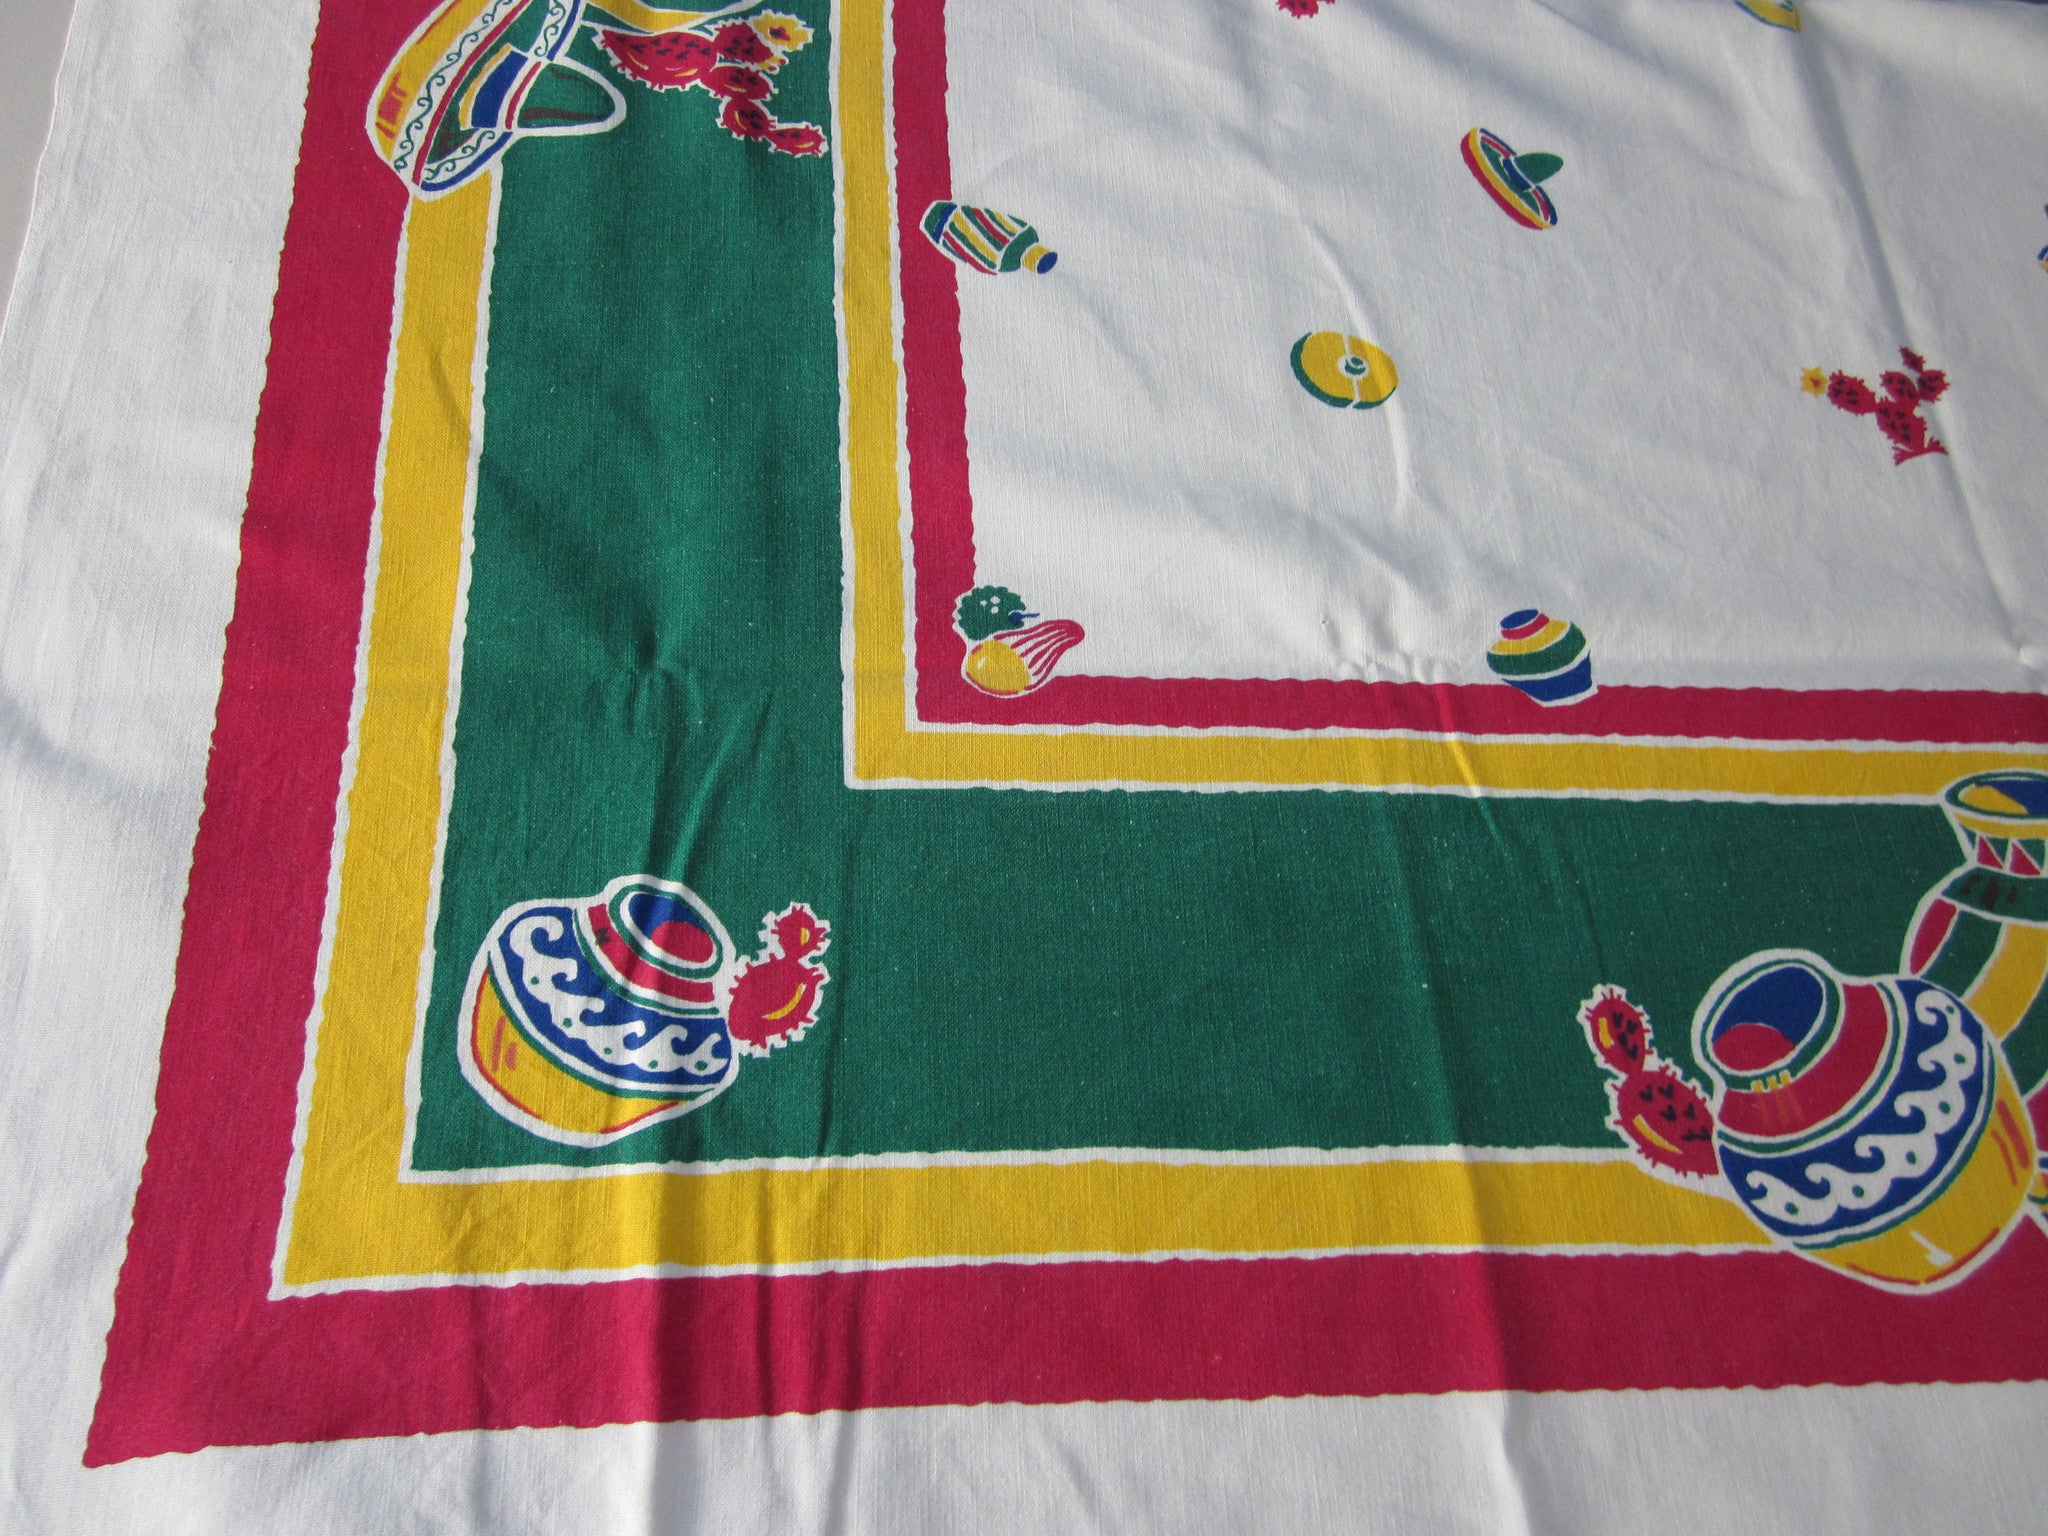 Primary Mexican Pots Startex Novelty Vintage Printed Tablecloth (52 X 48)